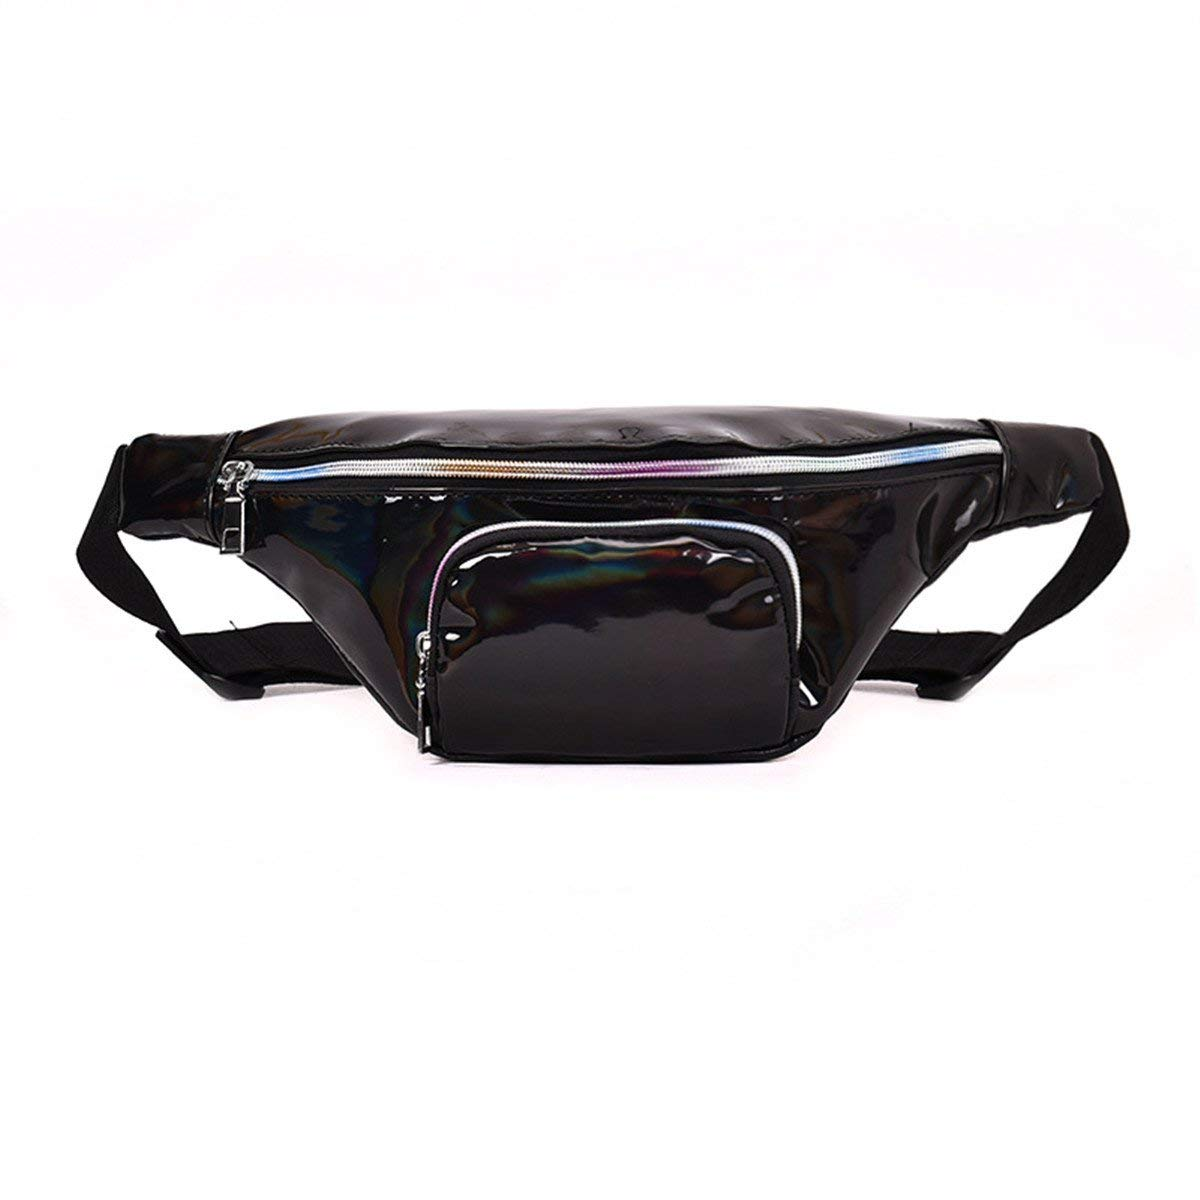 Andear Waist Bag Holographic Laser Bumbag PU Waterproof Fanny Pack Sports Hiking Running Hip Pack